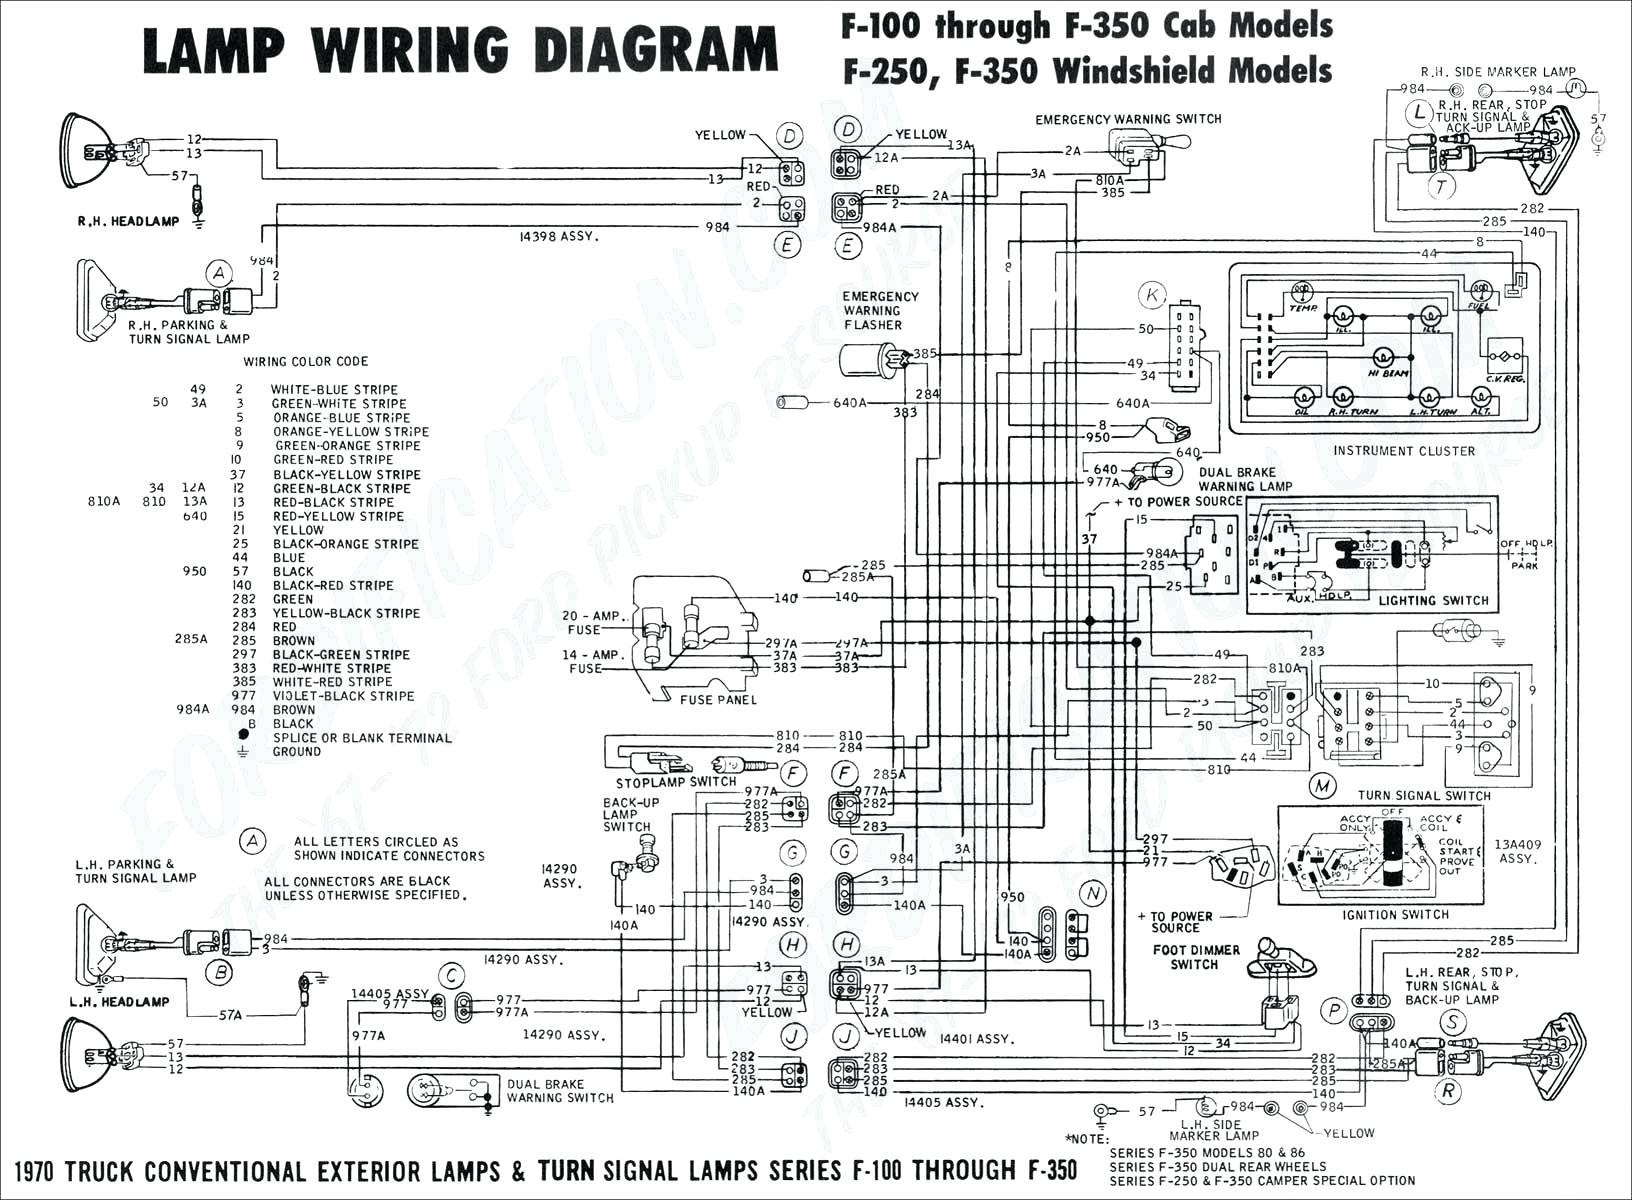 2001 Chevy Blazer Wiring Diagram 2002 Radio Diagrams 1997 S10 Collection Of